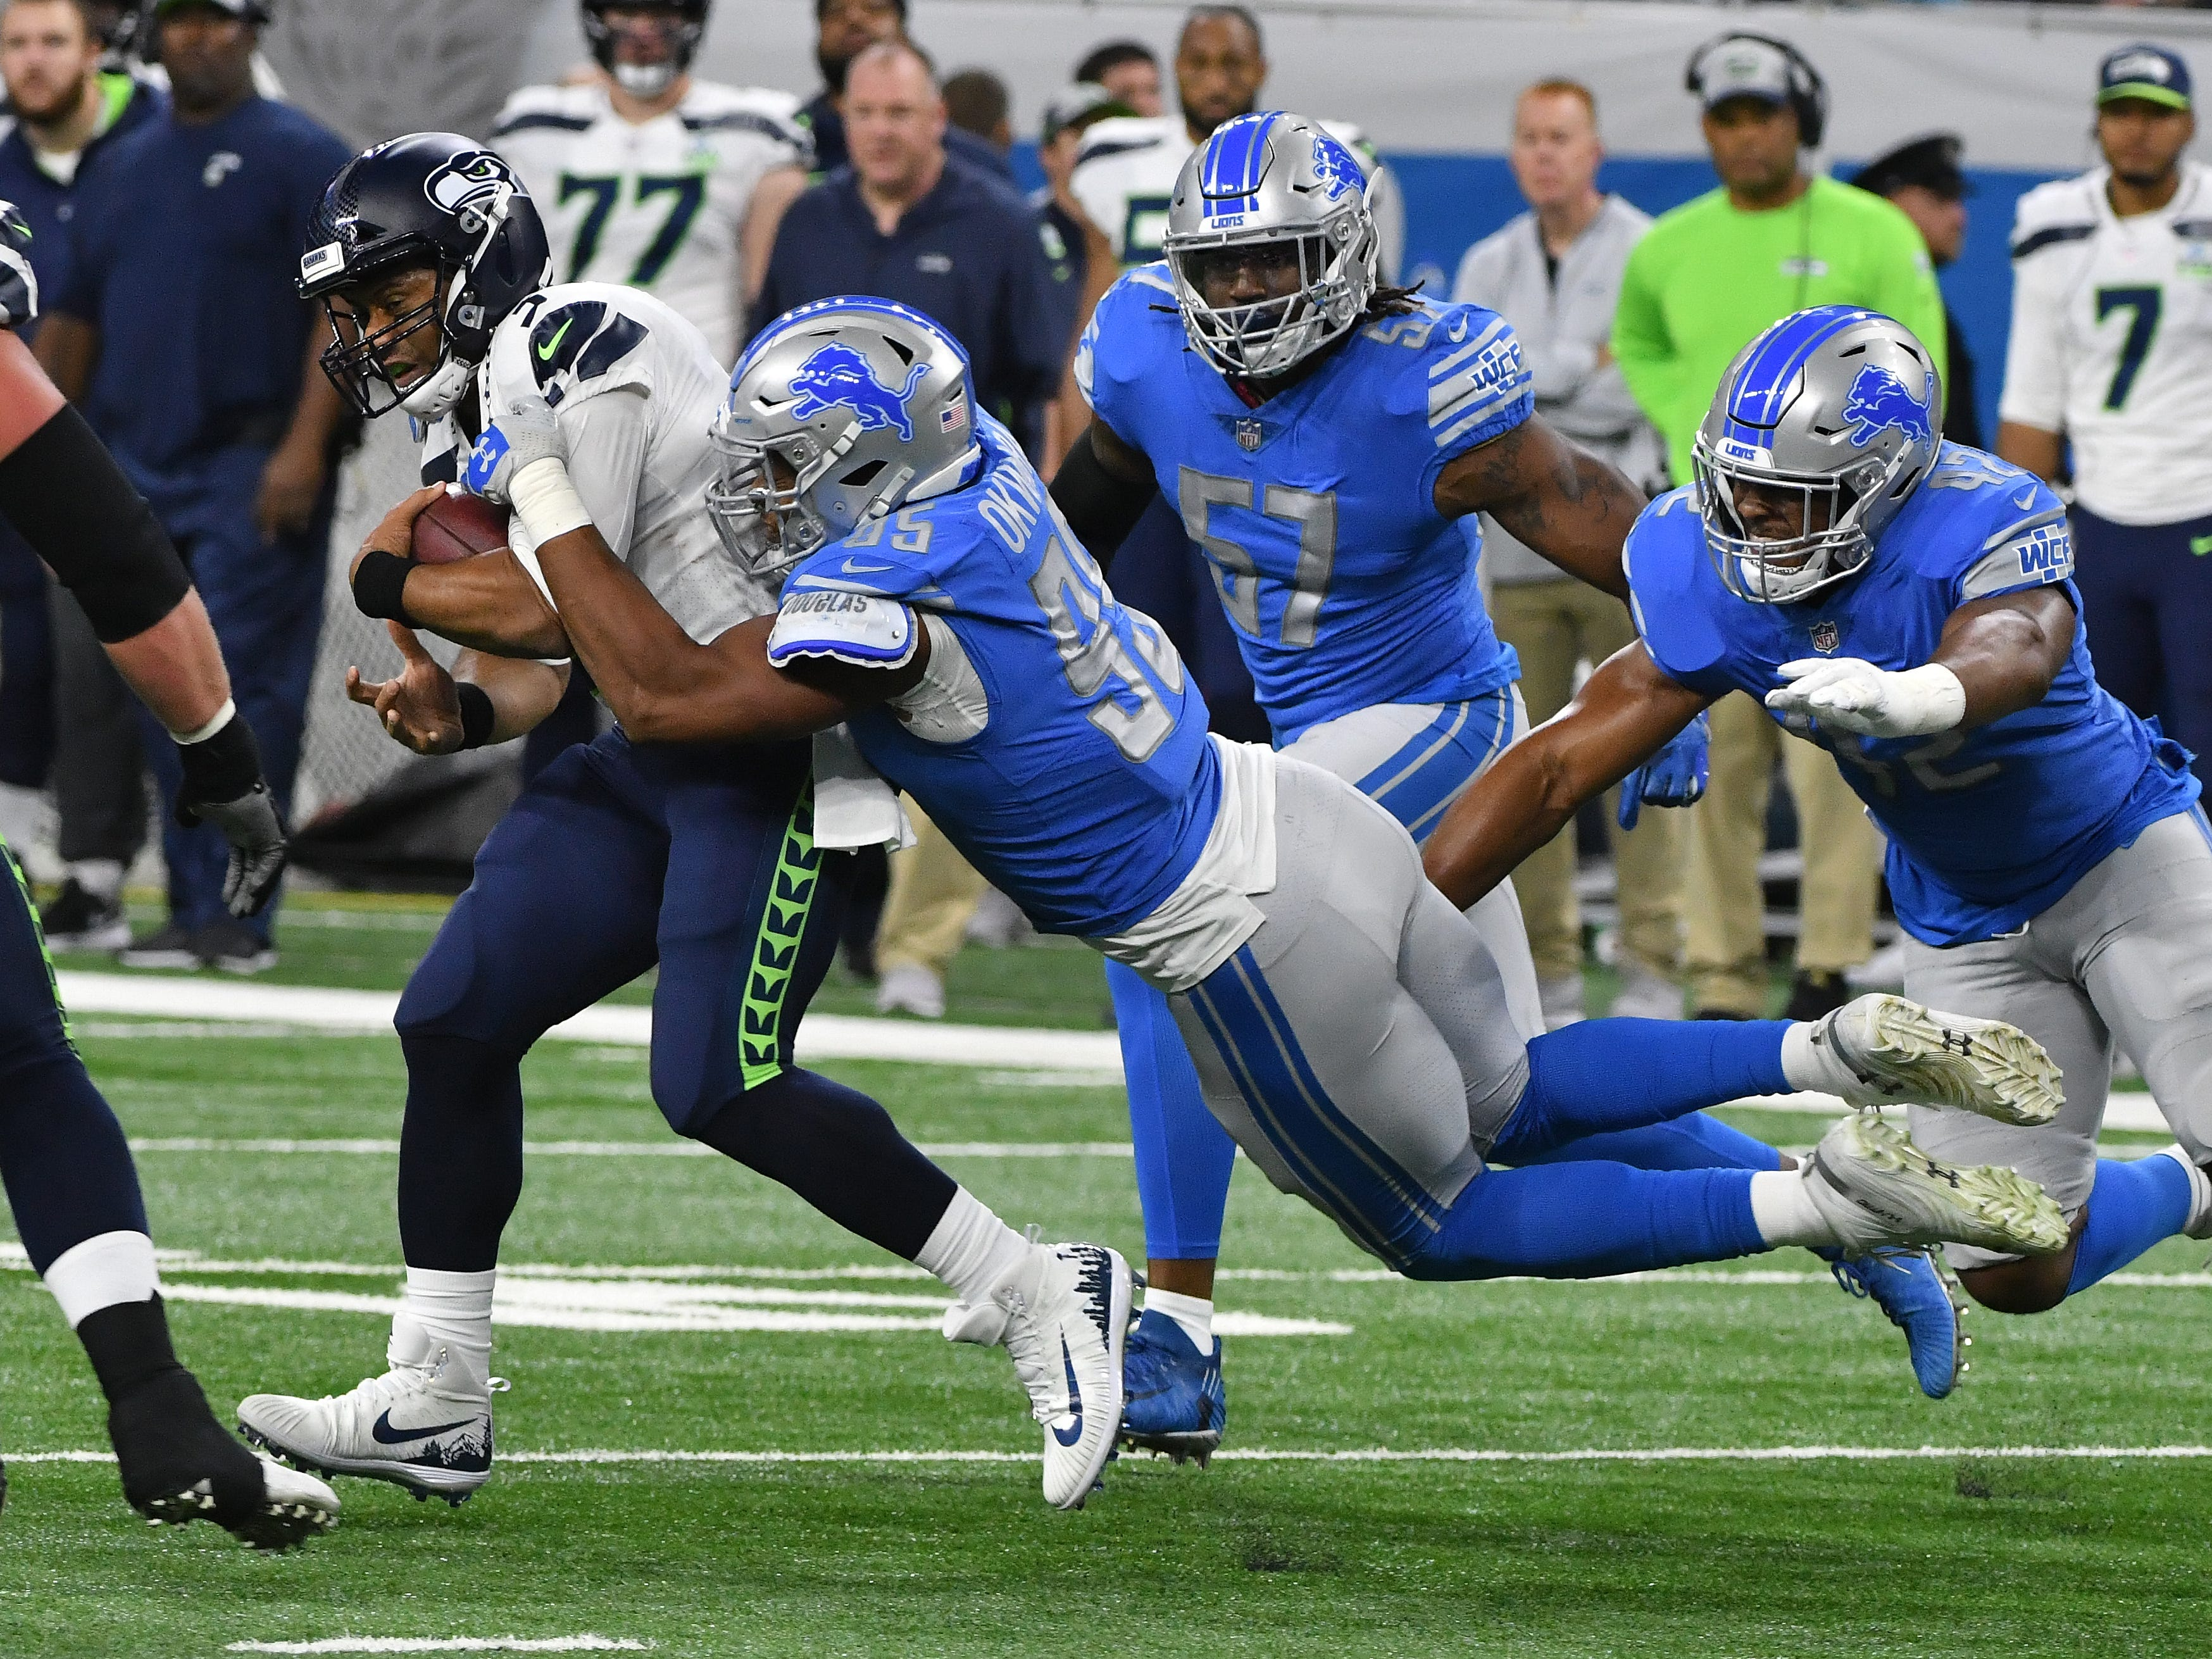 Seahawks quarterback Russell Wilson gets sacked by Lions' Romeo Okwara in the first quarter.